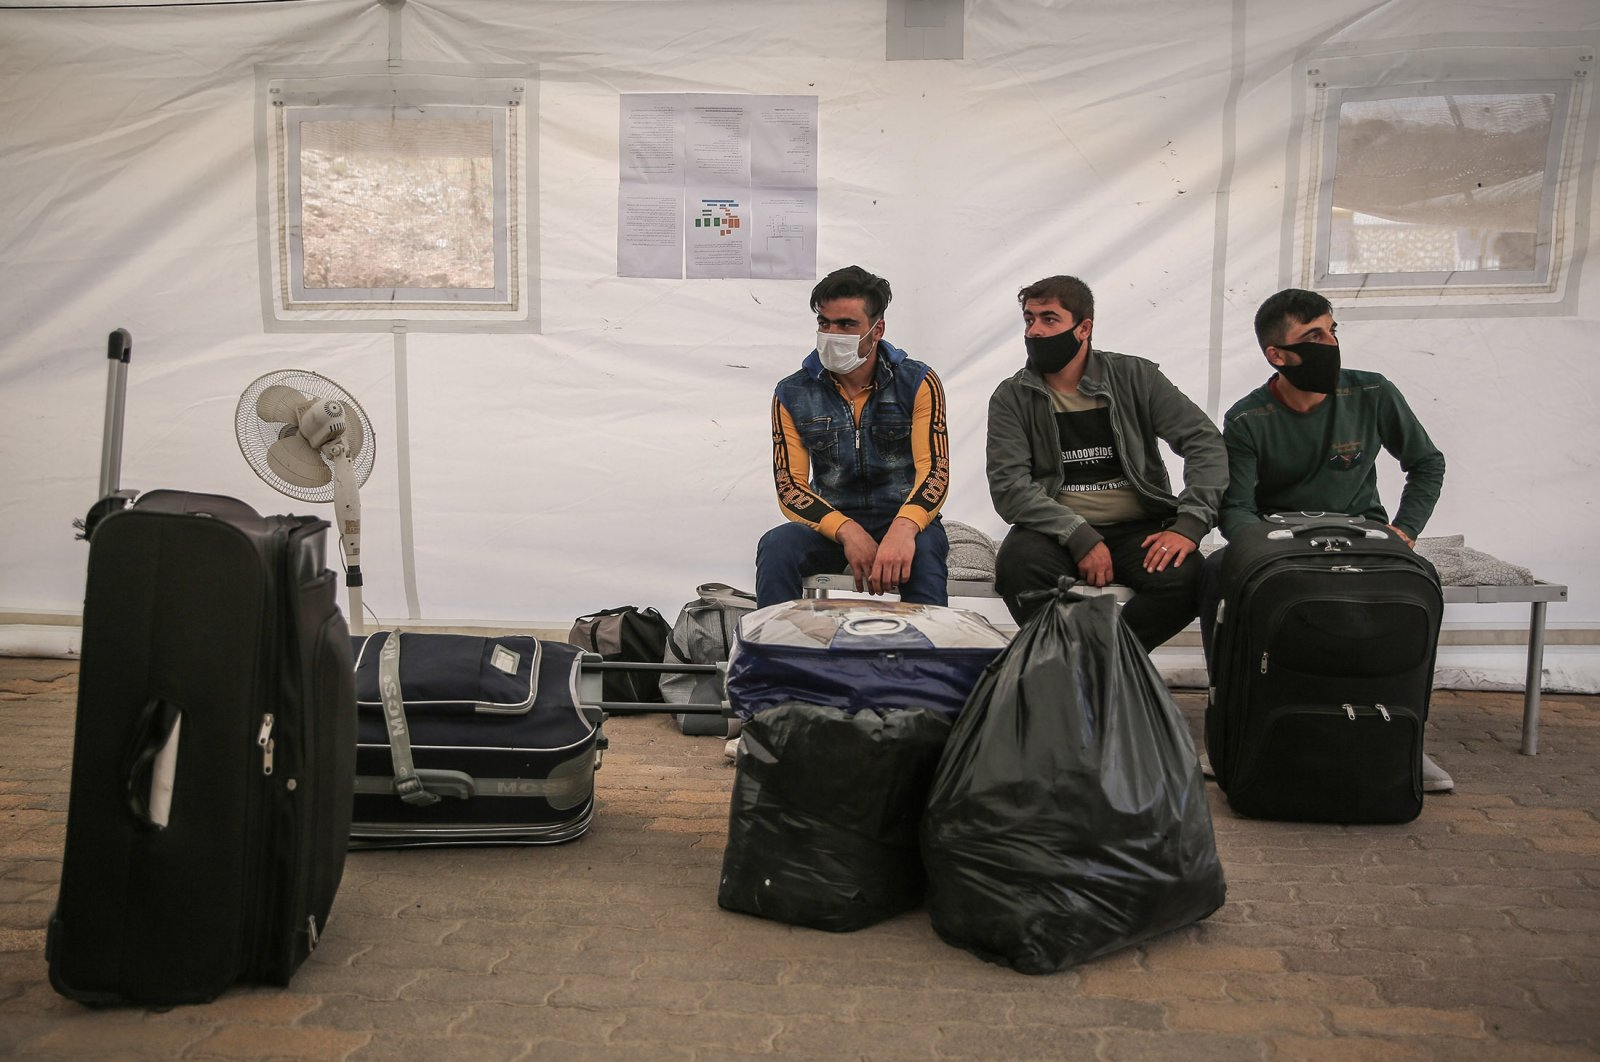 Syrians wearing face masks wait inside a mobile clinic at the Bab al-Hawa border crossing with Turkey, in Idlib, Syria, July 22, 2020. (Photo by Getty Images)